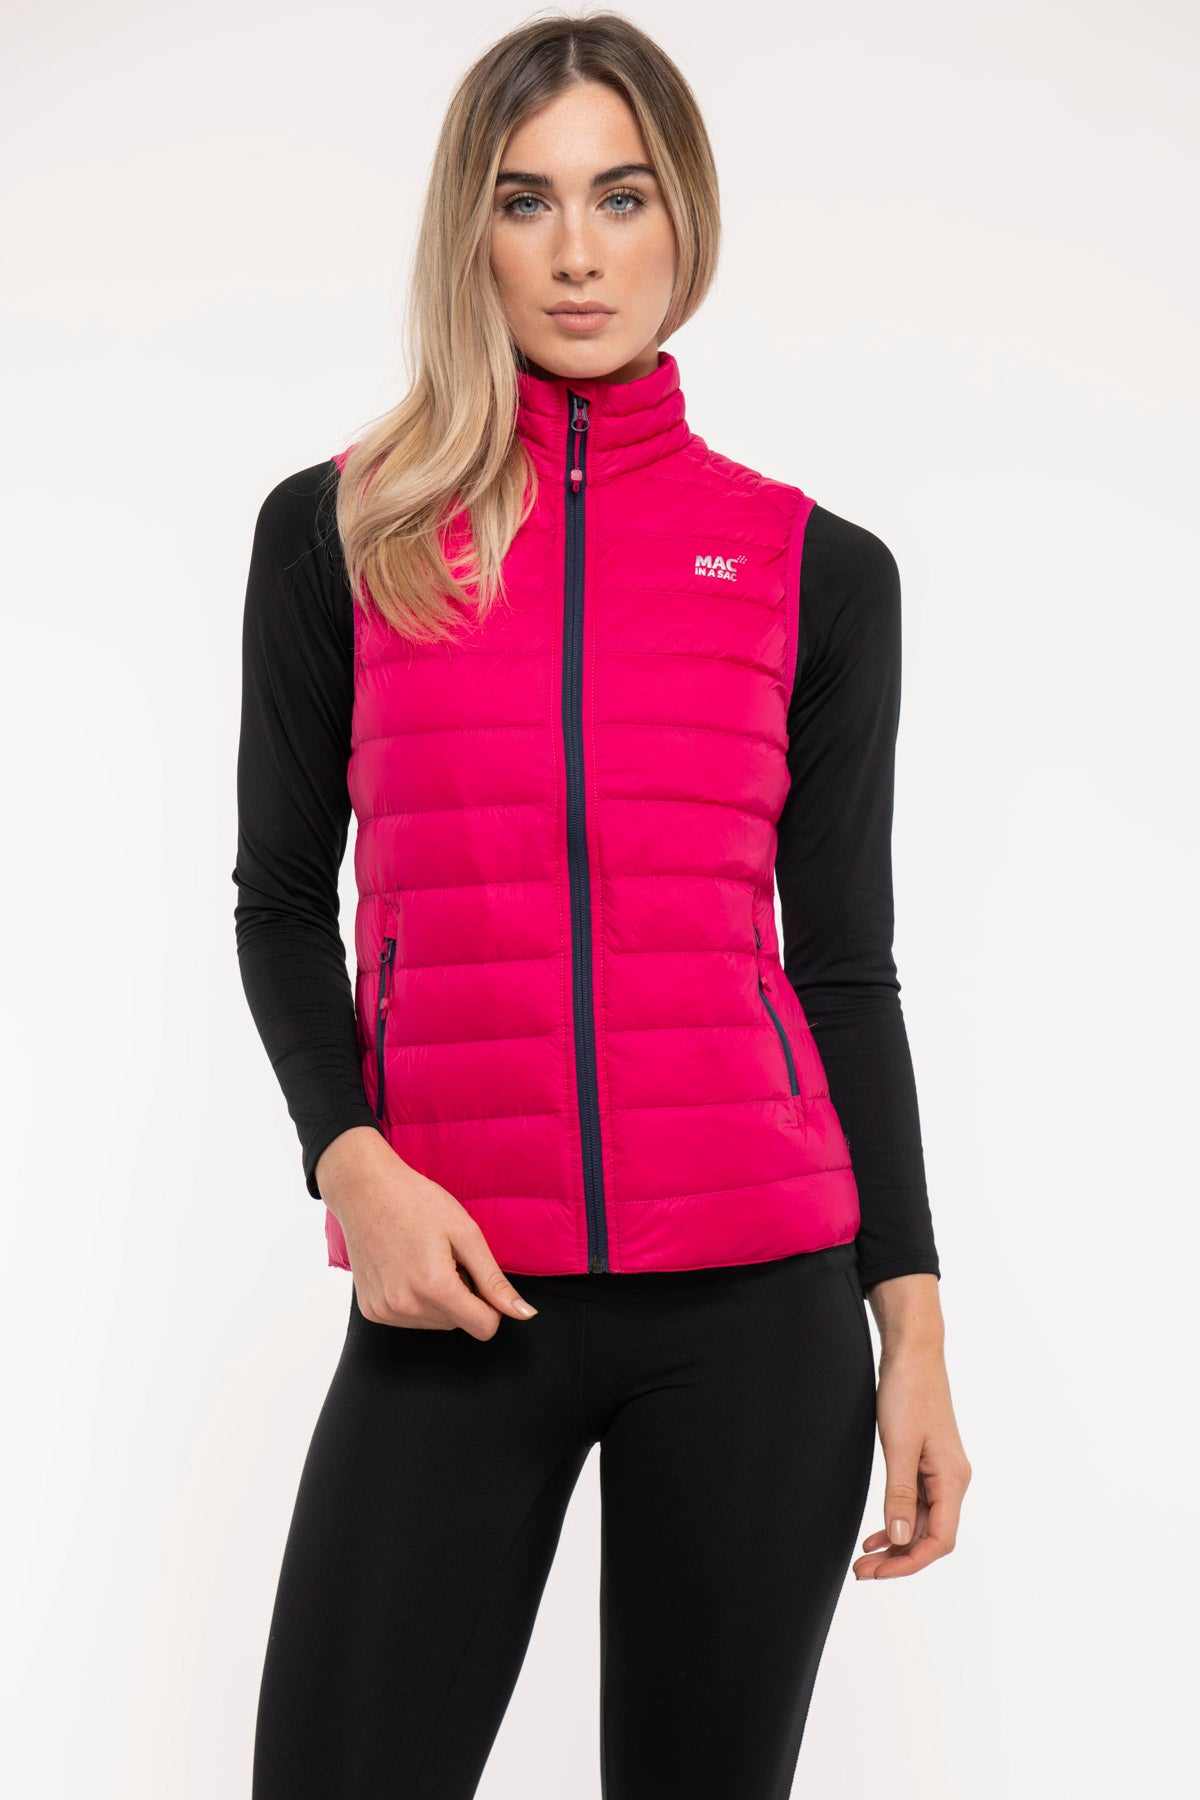 Alpine - Women's Packable Down Gilet - Pink